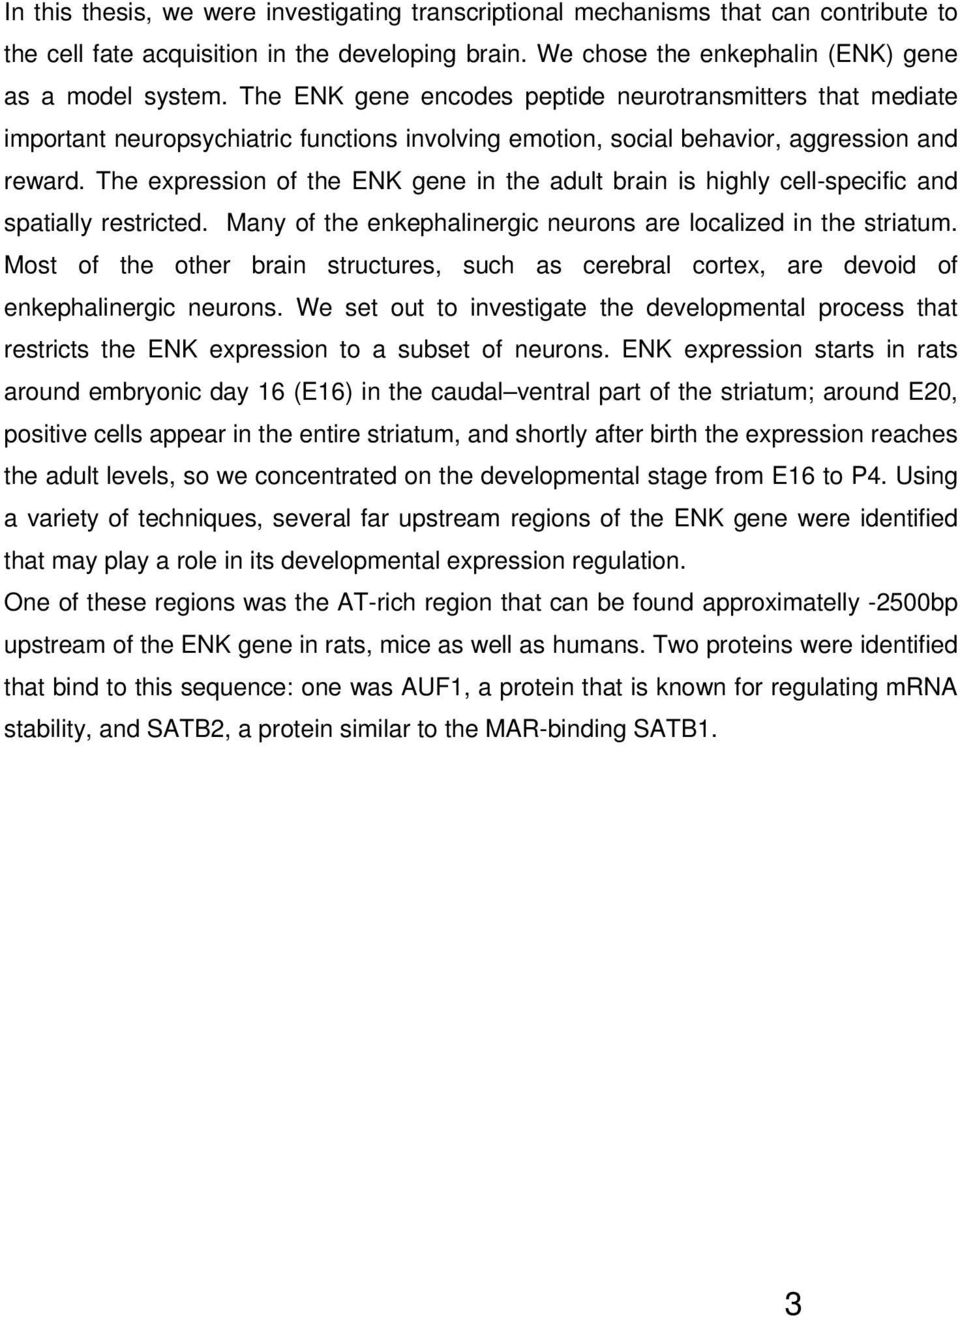 The expression of the ENK gene in the adult brain is highly cell-specific and spatially restricted. Many of the enkephalinergic neurons are localized in the striatum.